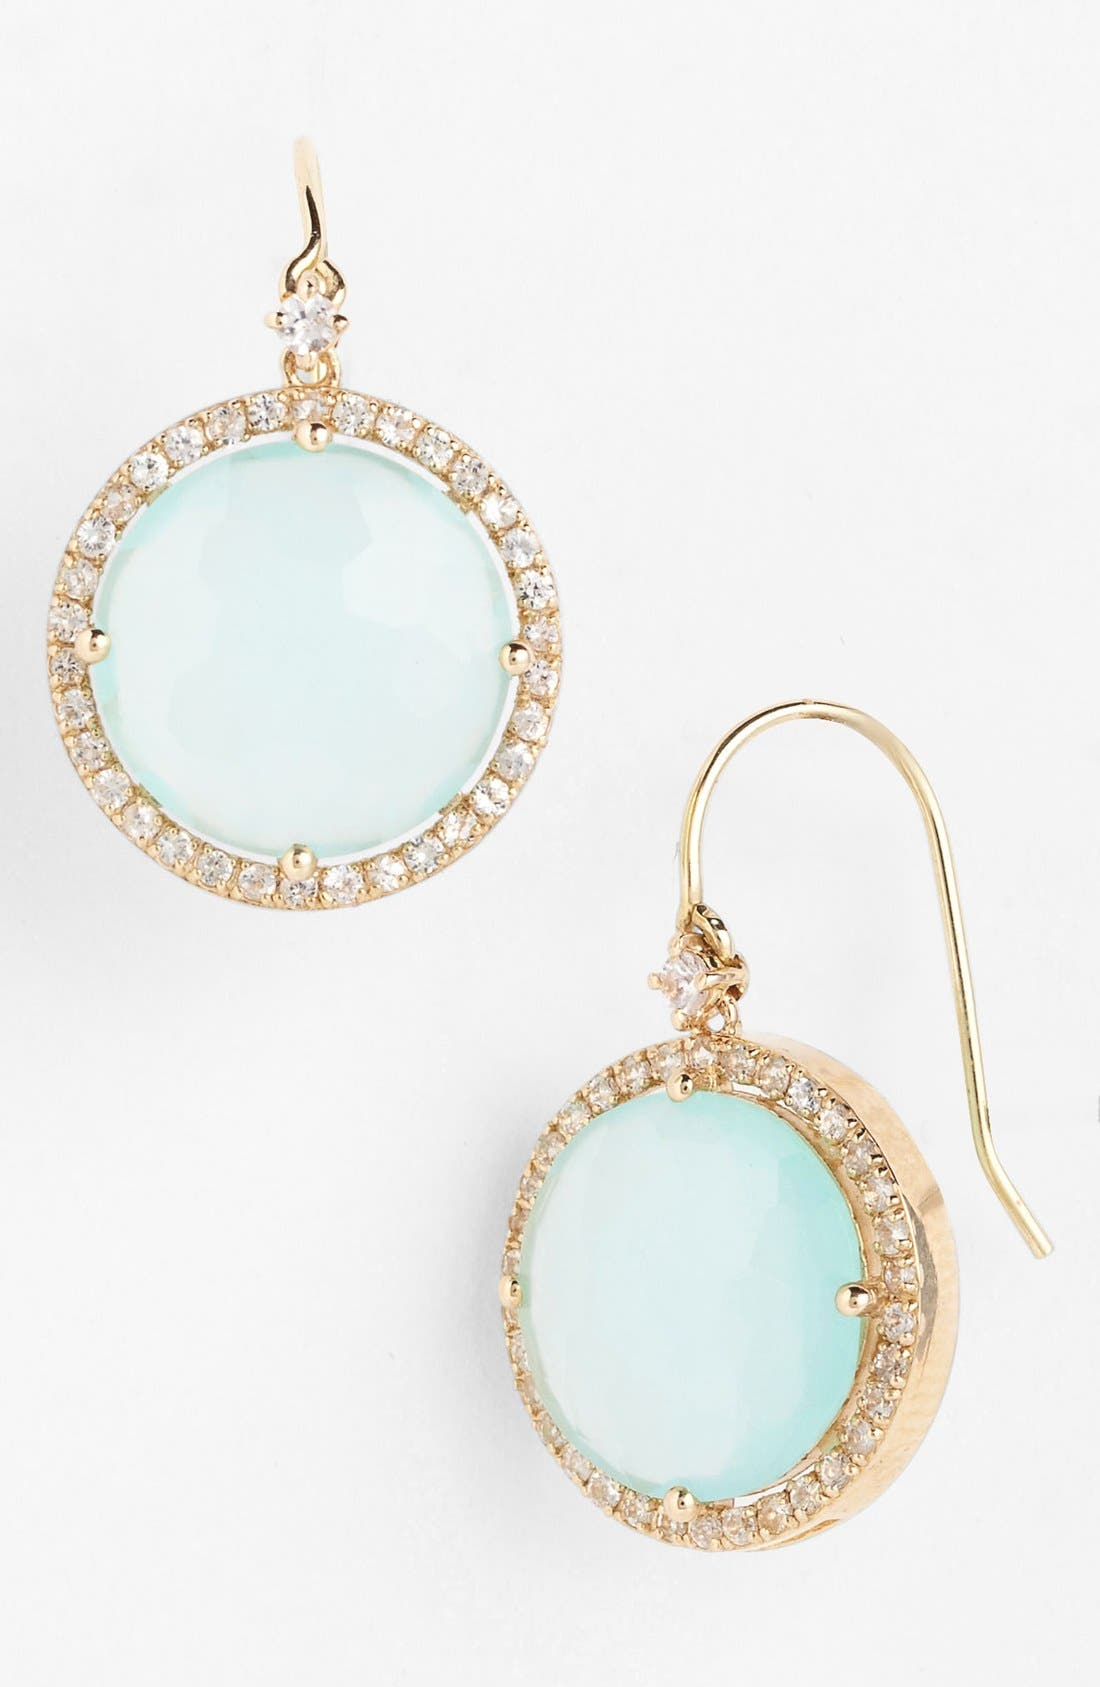 Main Image - KALAN by Suzanne Kalan Drop Earrings